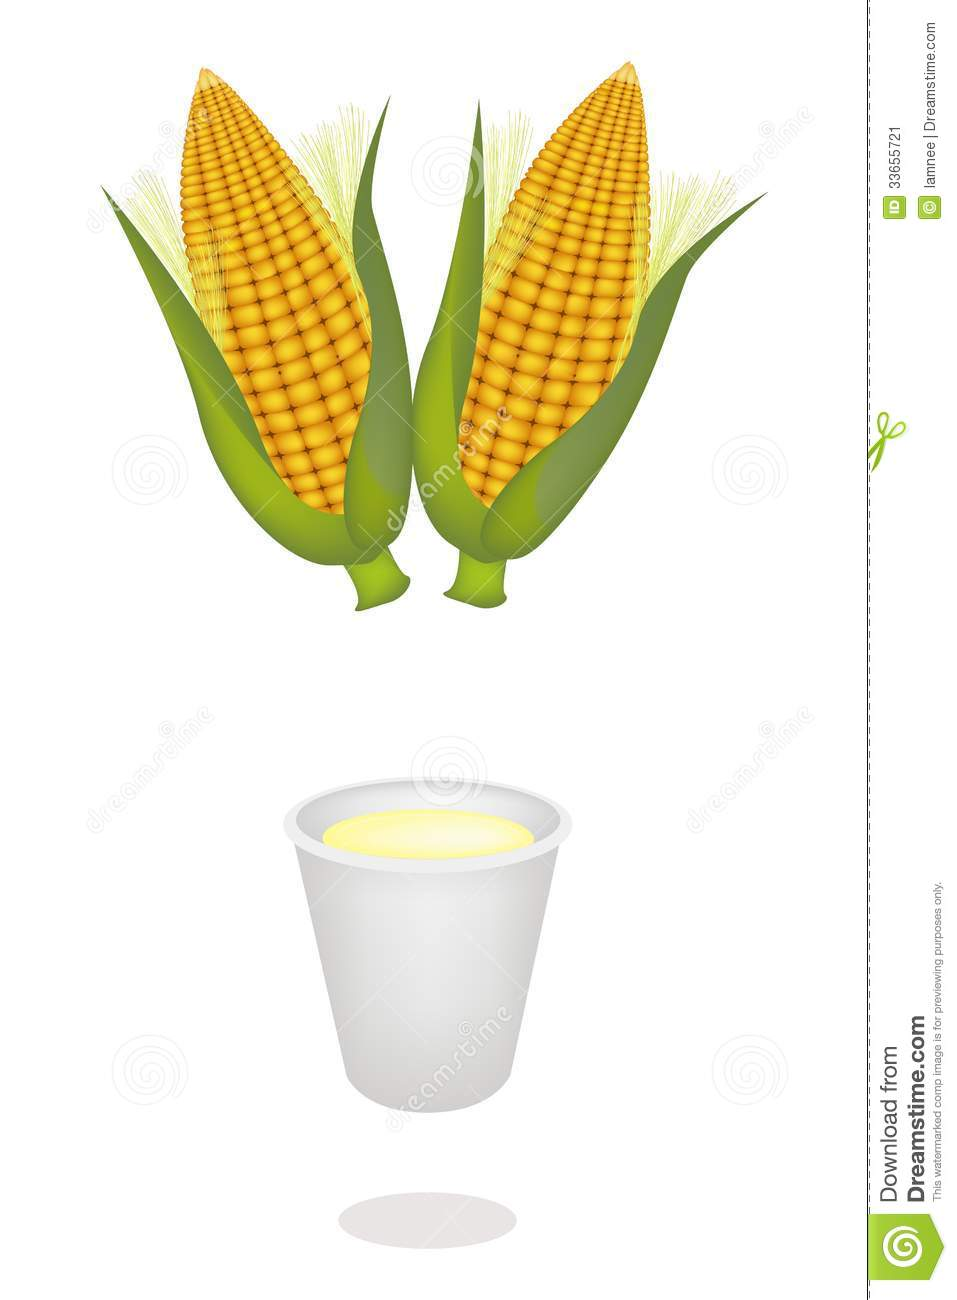 Fresh Ripe Sweet Corns with A Disposable Cup of Corn Juice or Corn ...